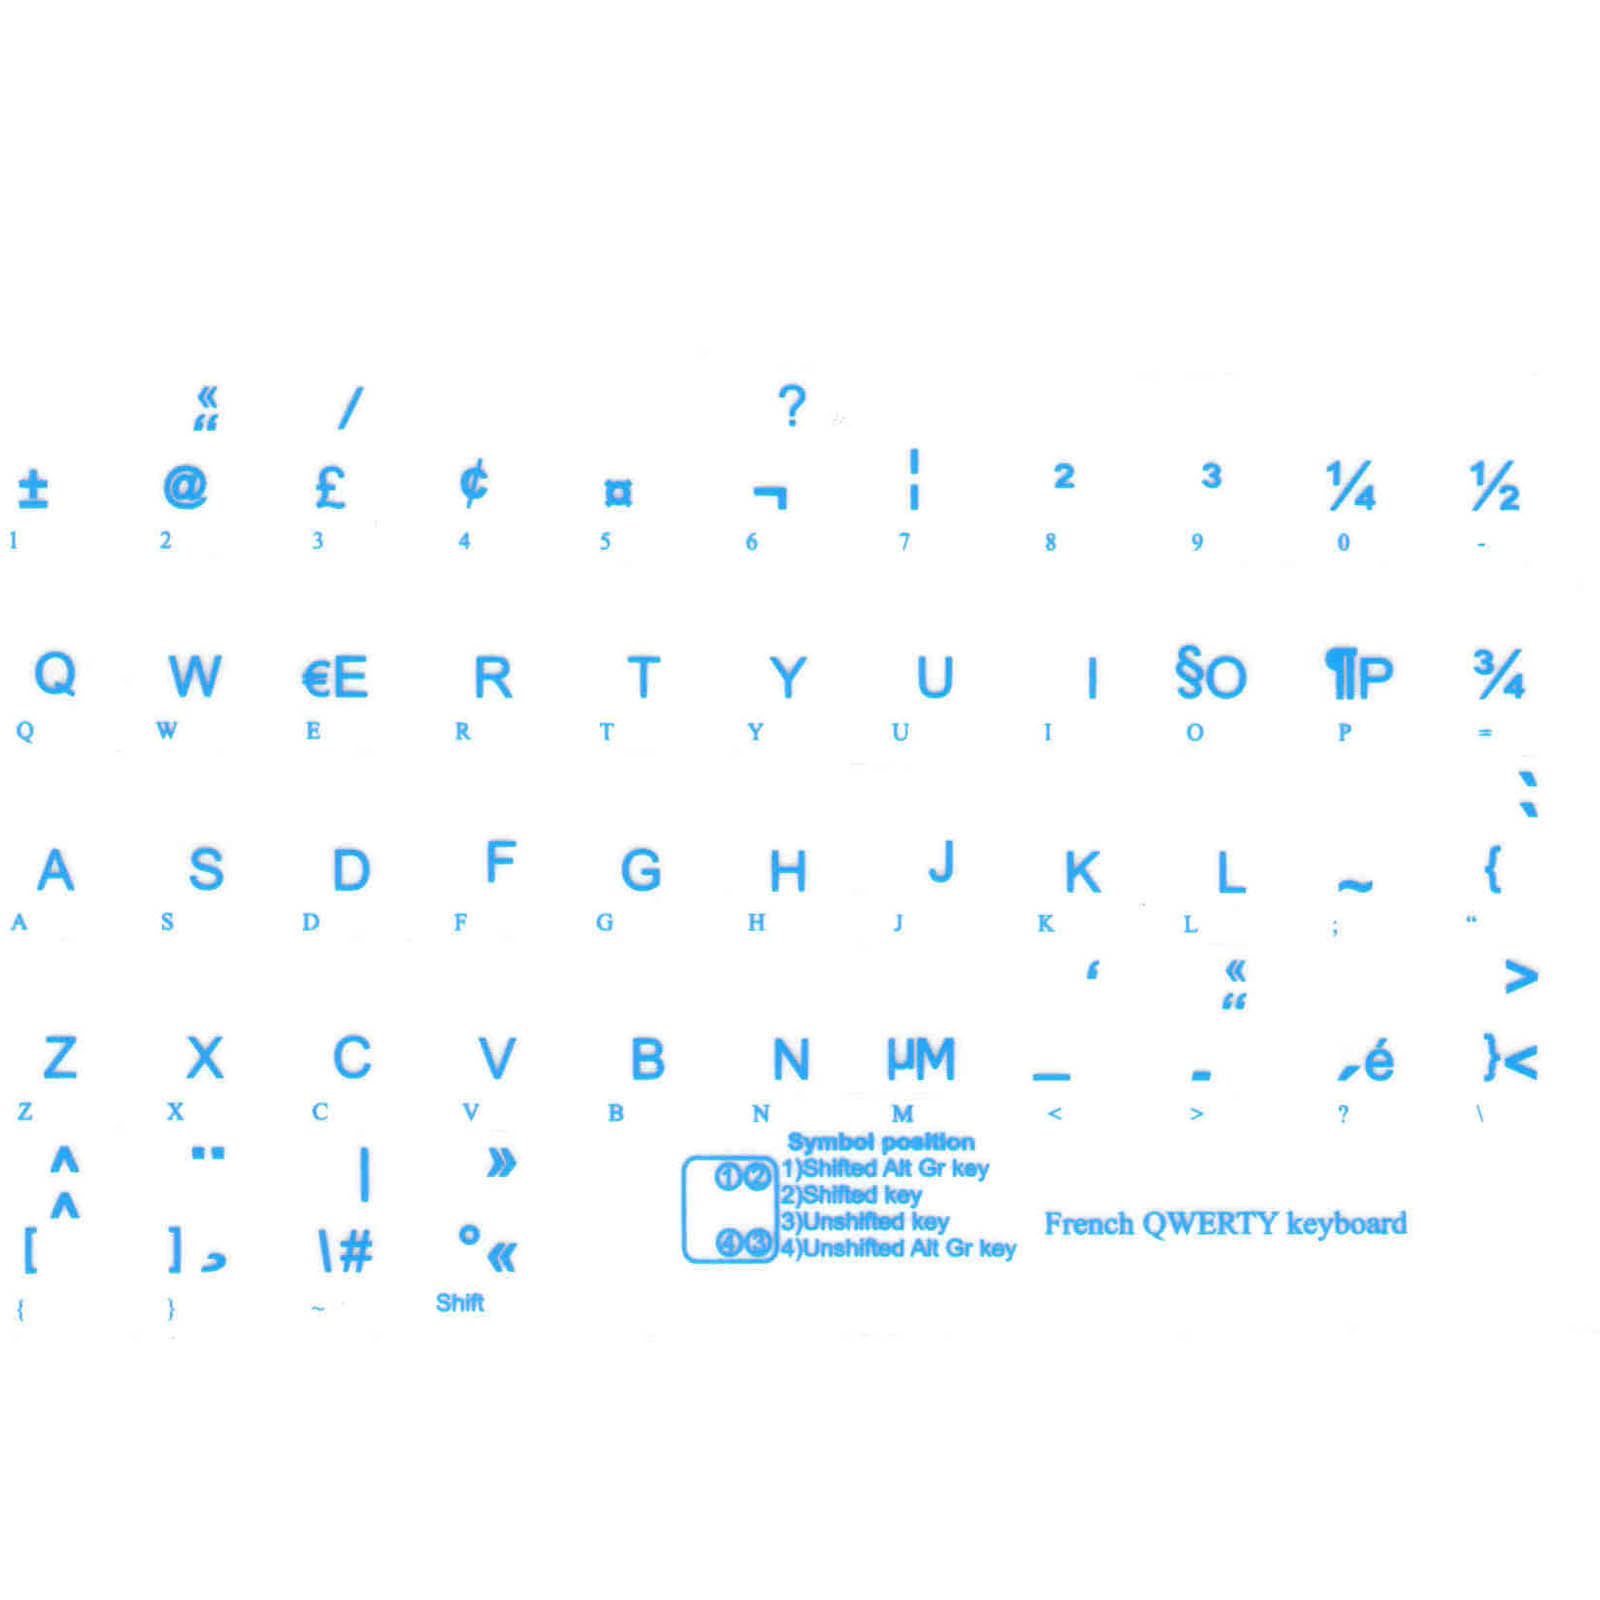 French qwerty keyboard stickers blue letters transparent french qwerty keyboard stickers blue letters transparent background spiritdancerdesigns Images